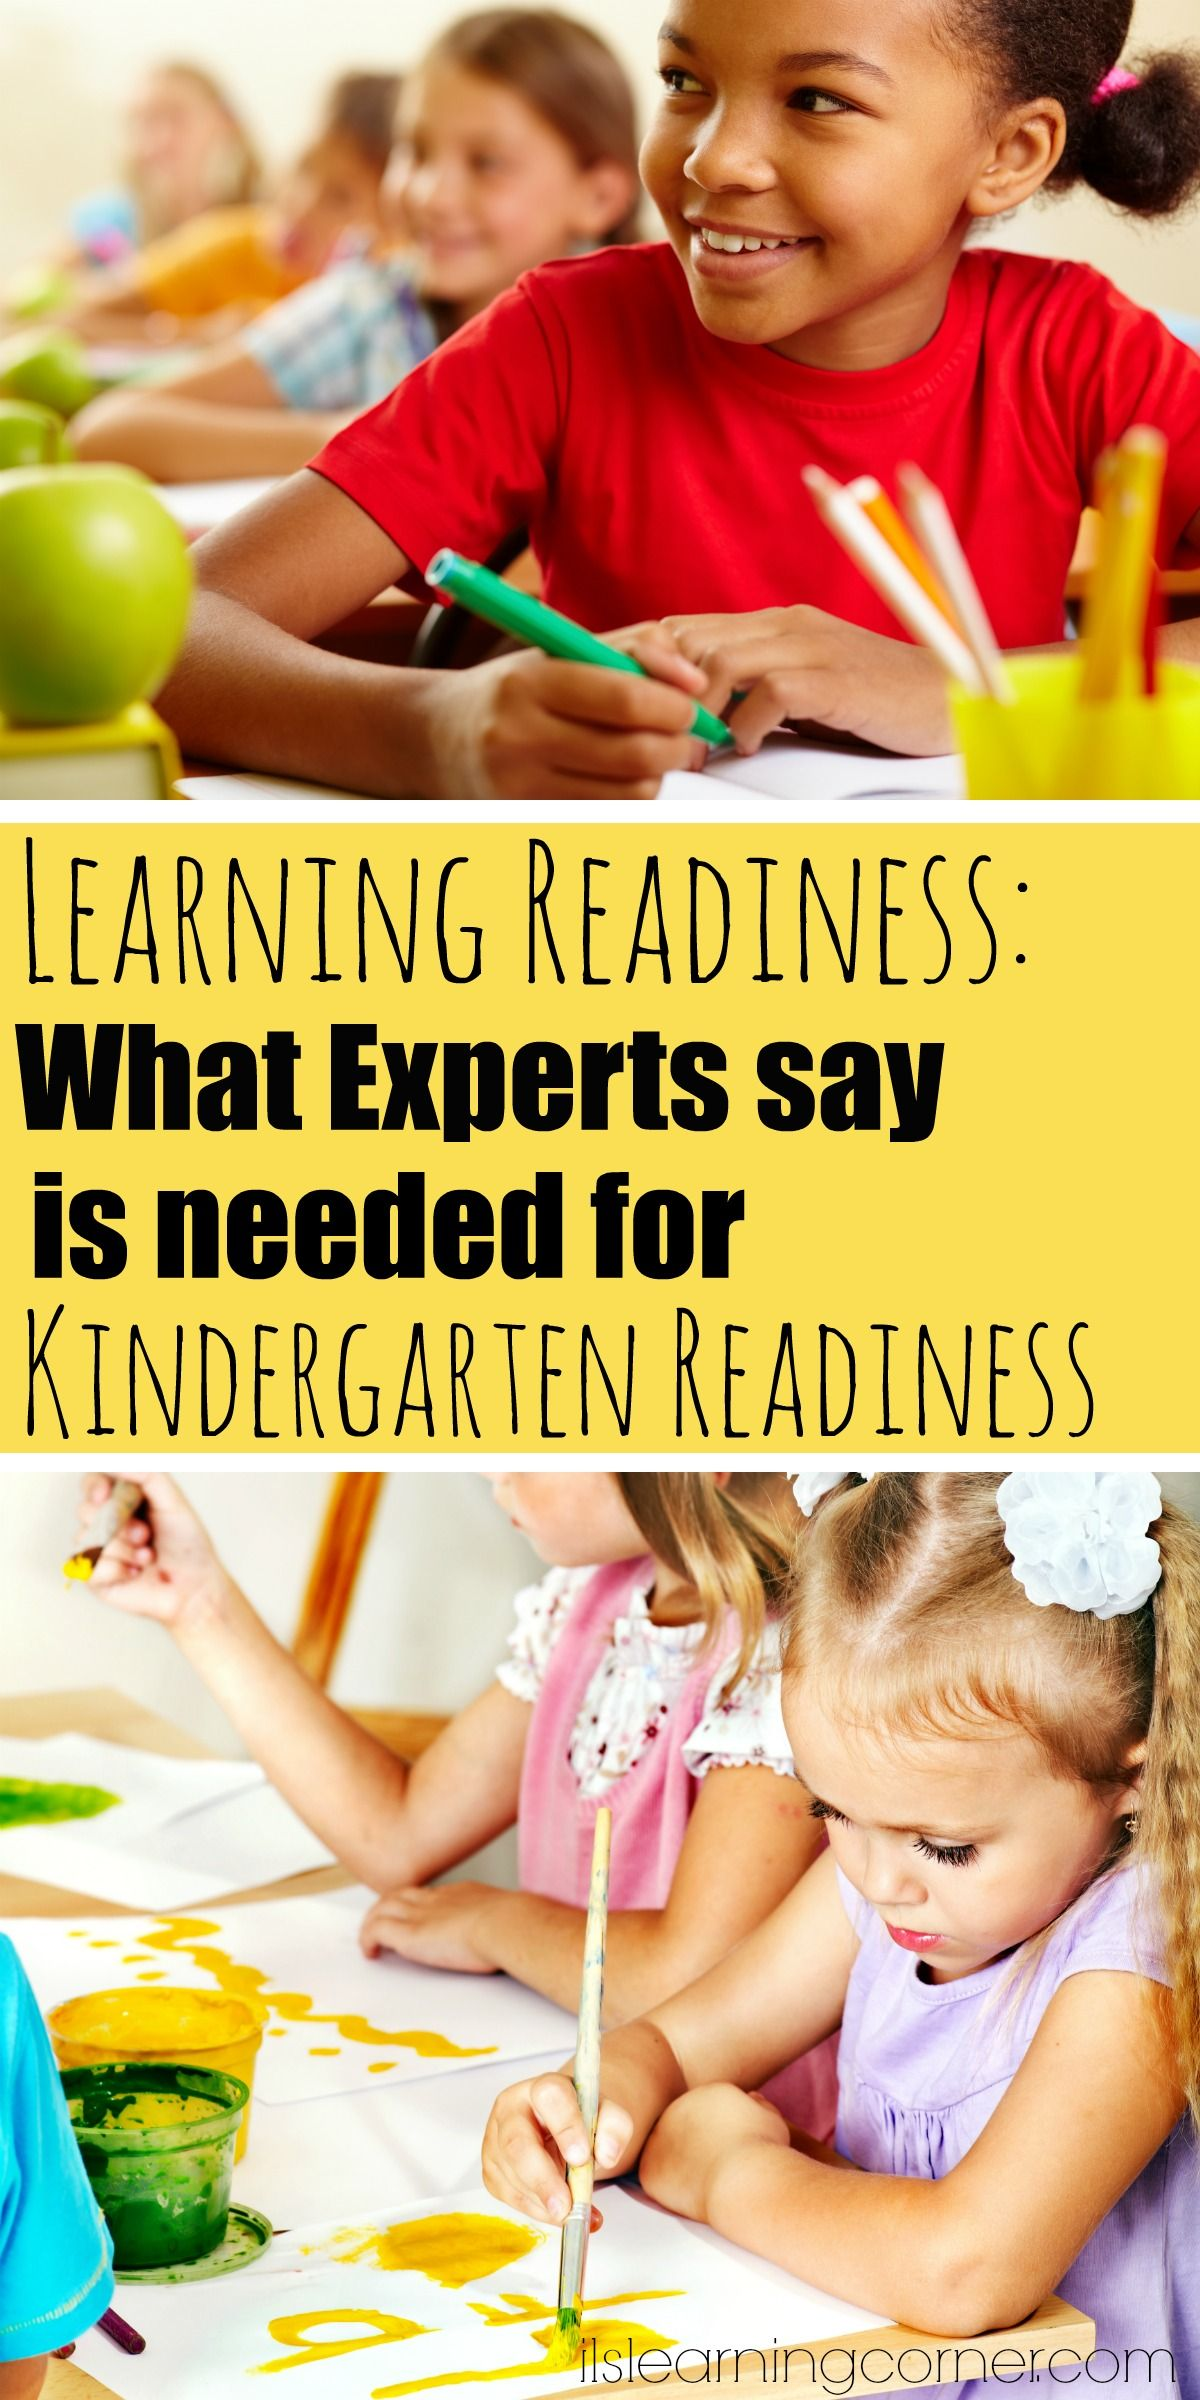 Is My Child Ready For Learning What Experts Say Is Really Needed For Kindergarten Readiness